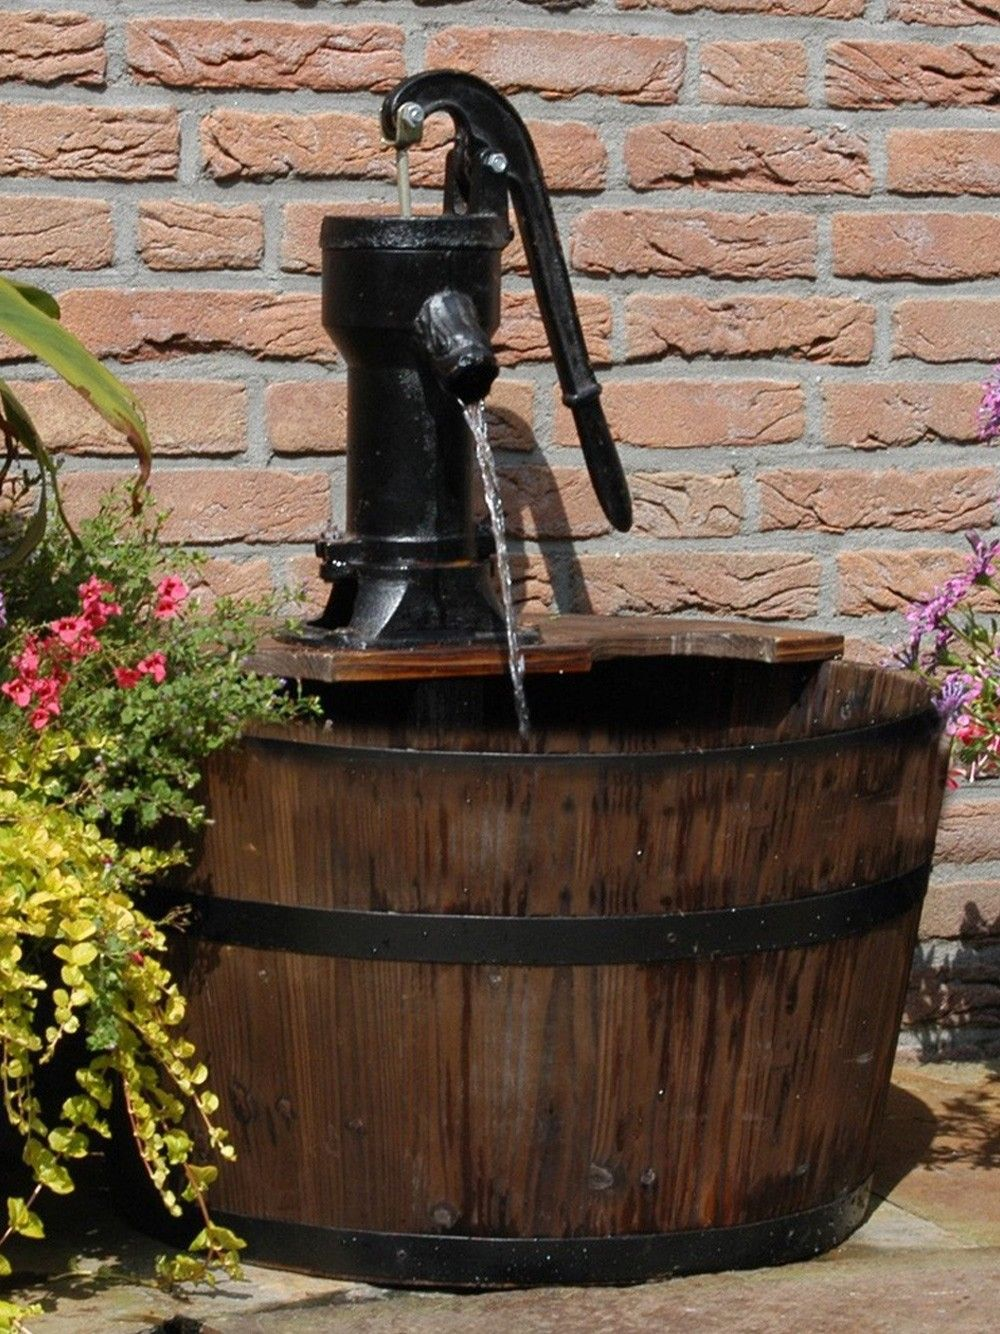 Garden water features solar power  The Newcastle Wooden Barrel Water Feature is a traditional wooden